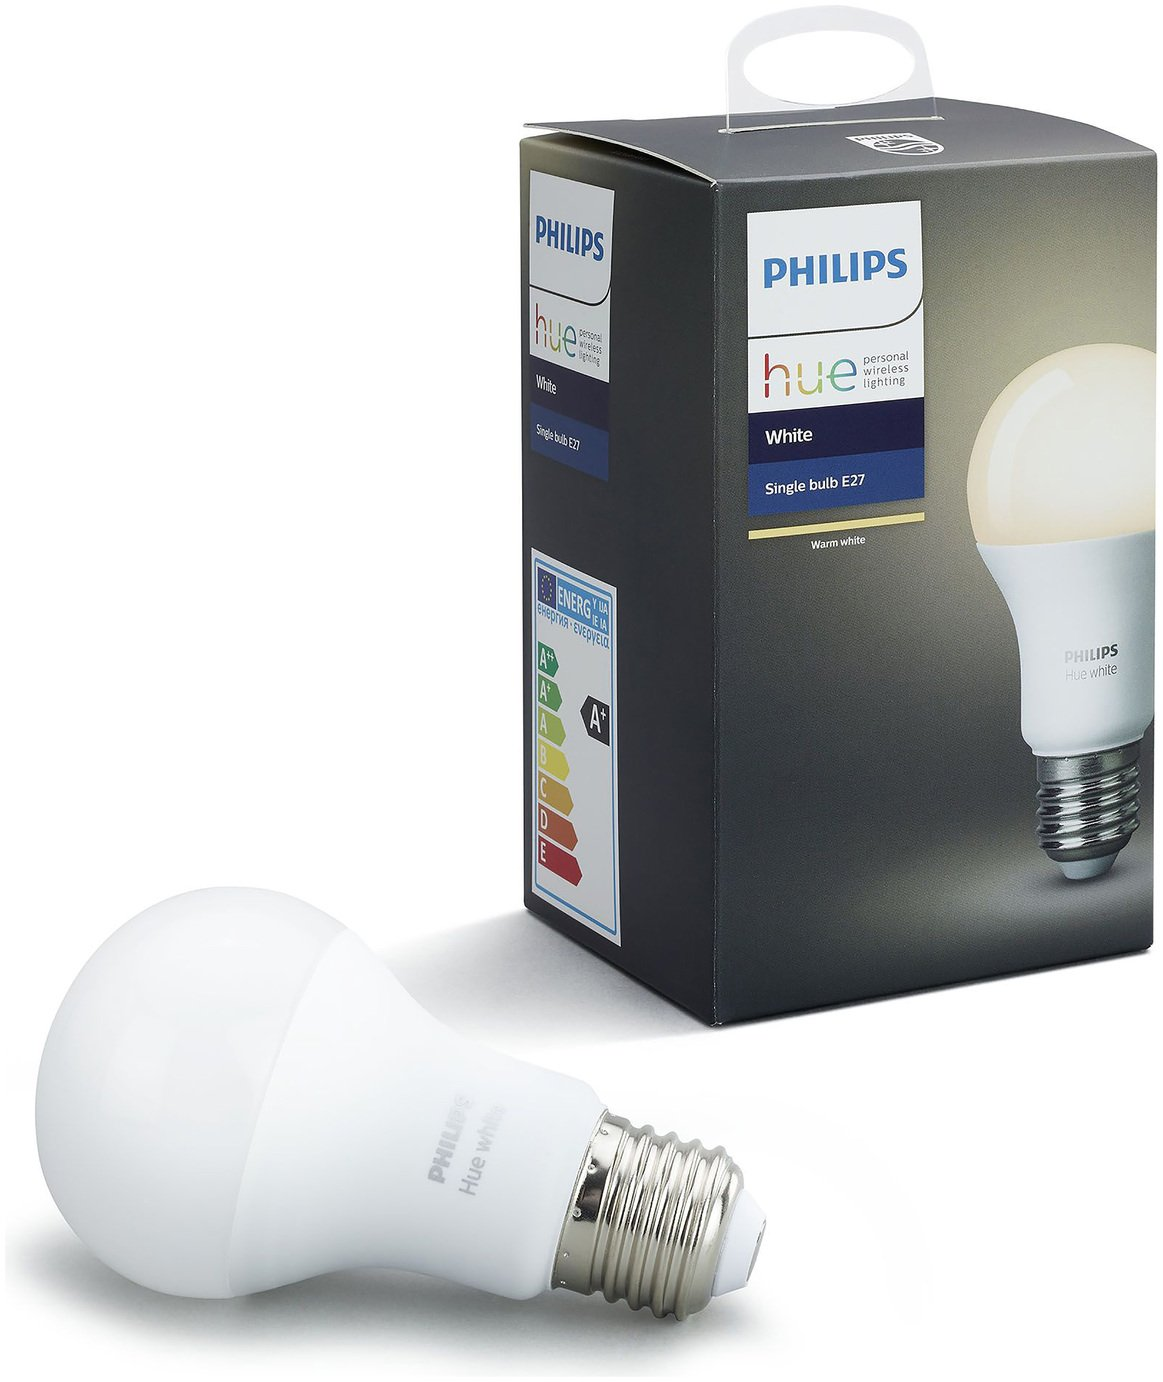 Philips - Hue White Wireless LED 95W E27 Light Bulb from Philips